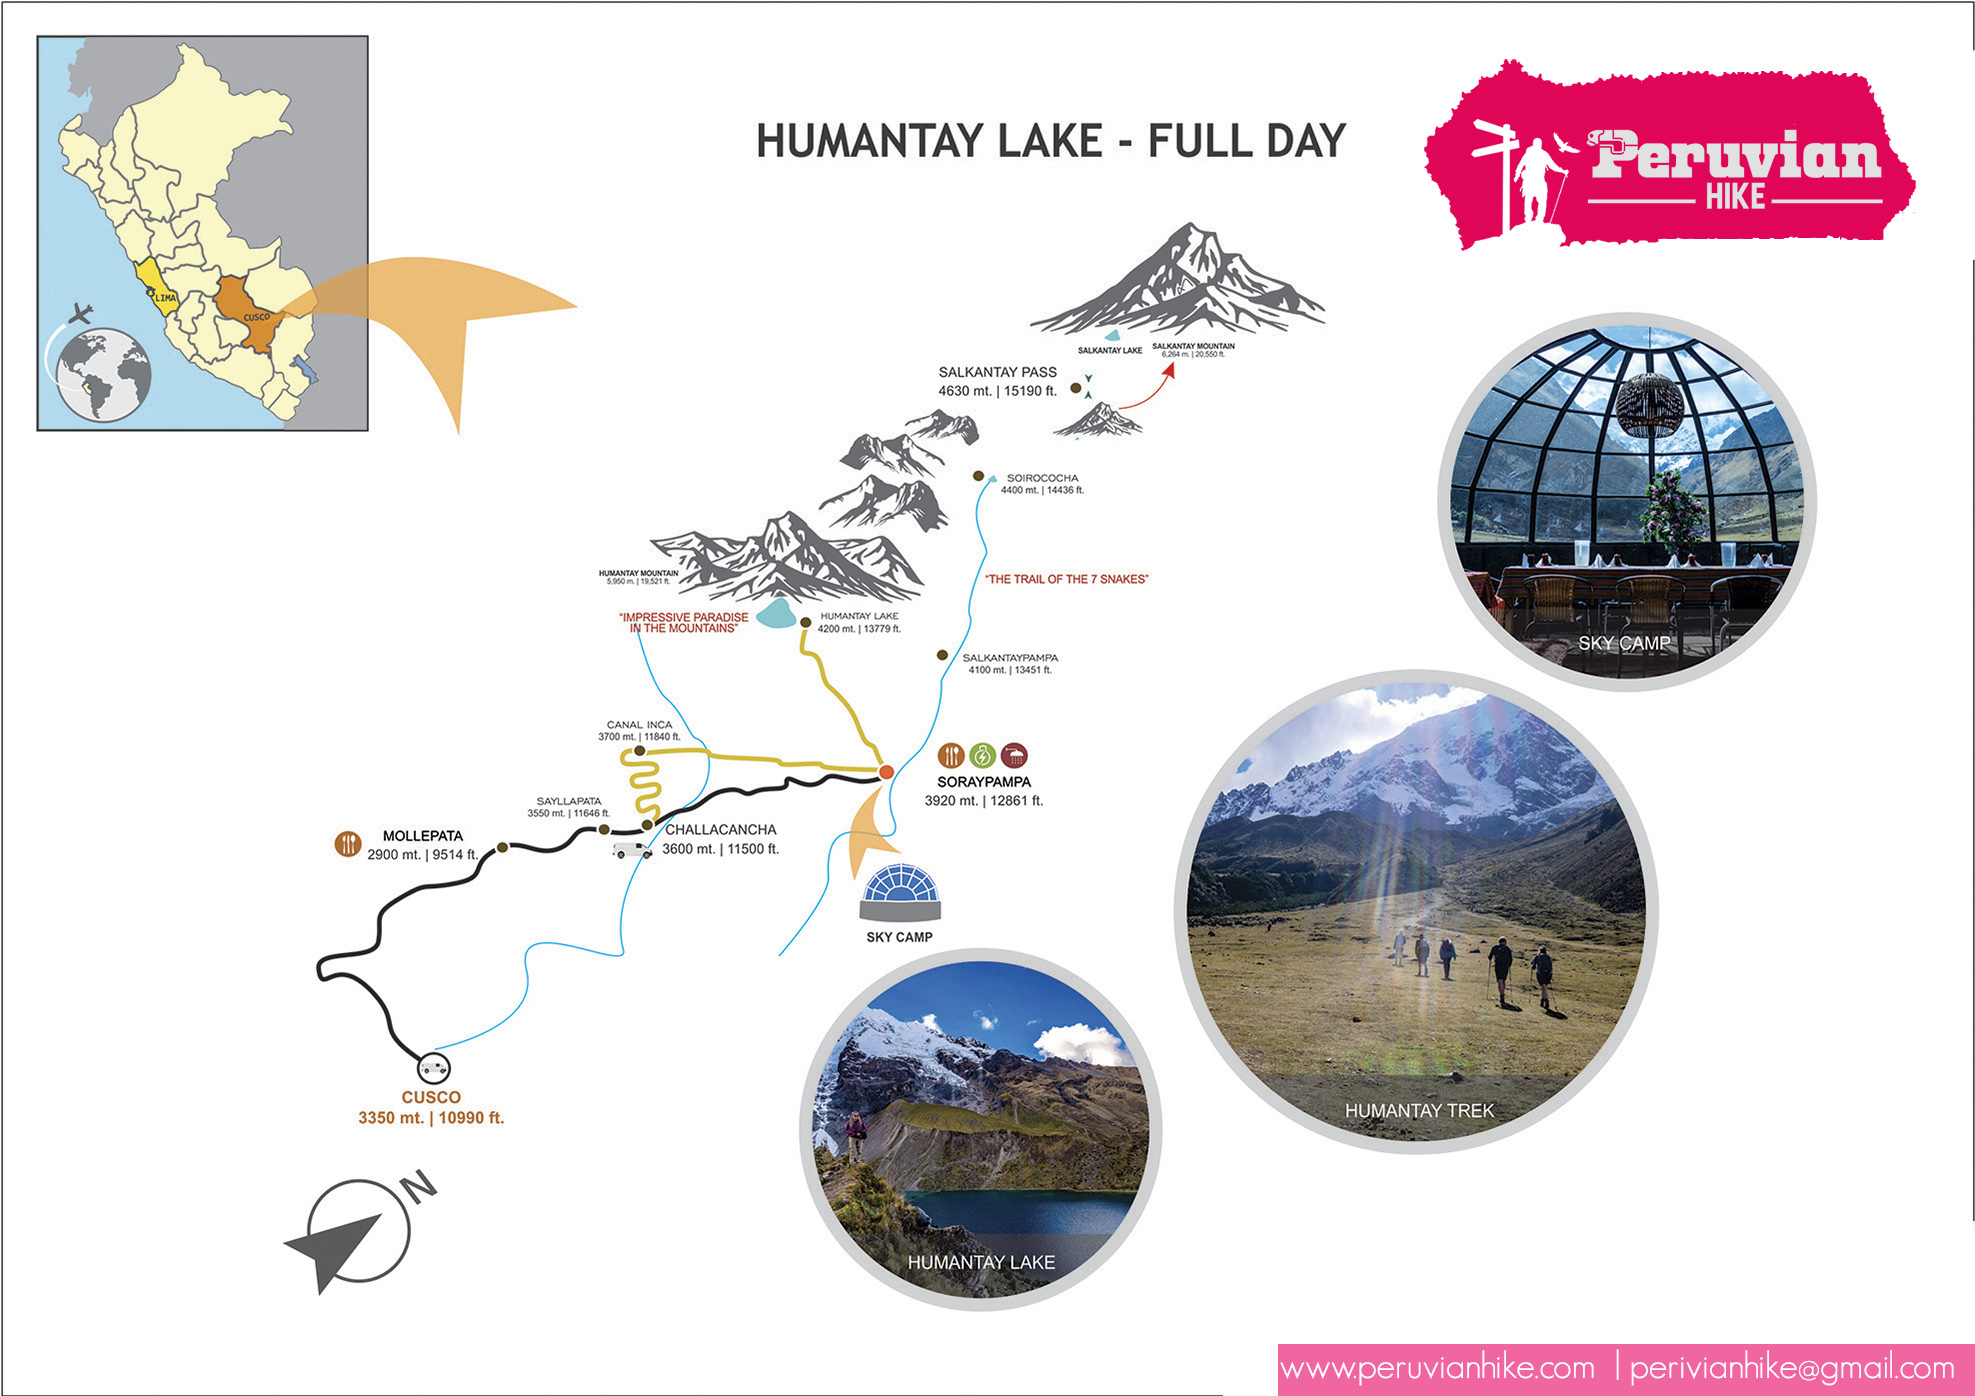 Humantay lake  map and itinerary